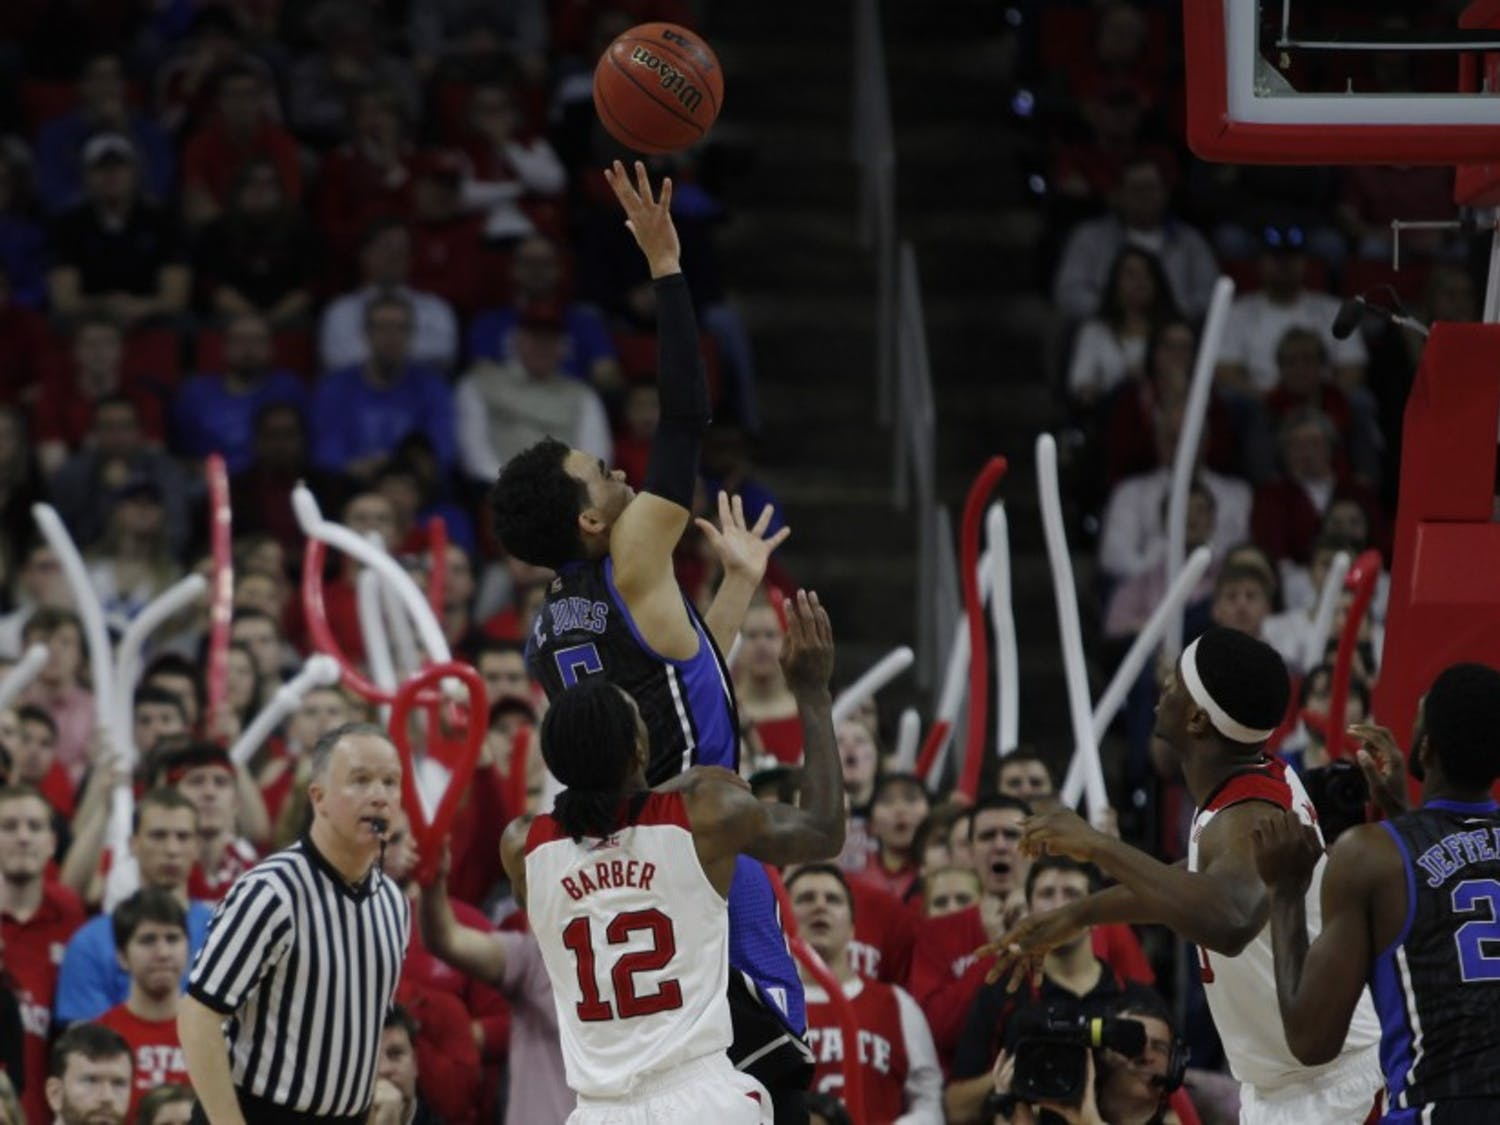 Freshman Tyus Jones was held to four points on 1-of-6 shooting against N.C. State and will look to hit double-digits for the first time in 2015 against Miami.